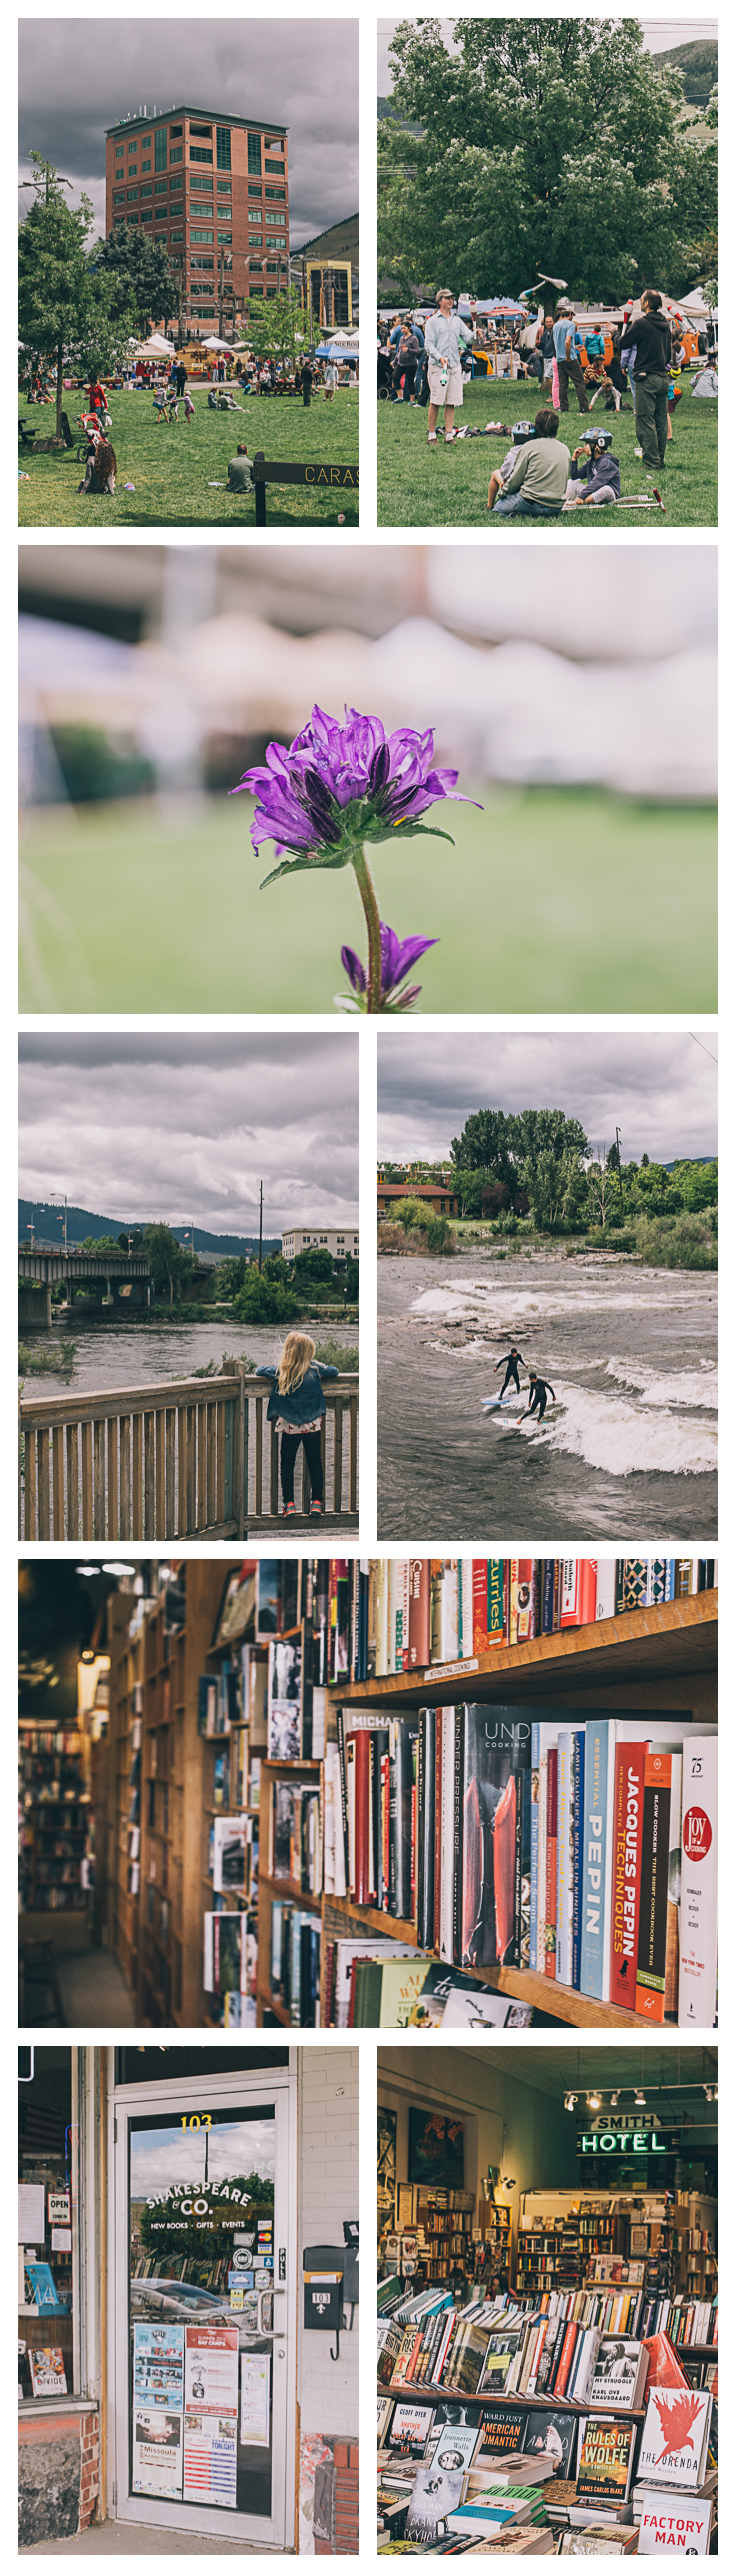 Exploring Missoula - Clark Fork Market and Shakespeare & Co.